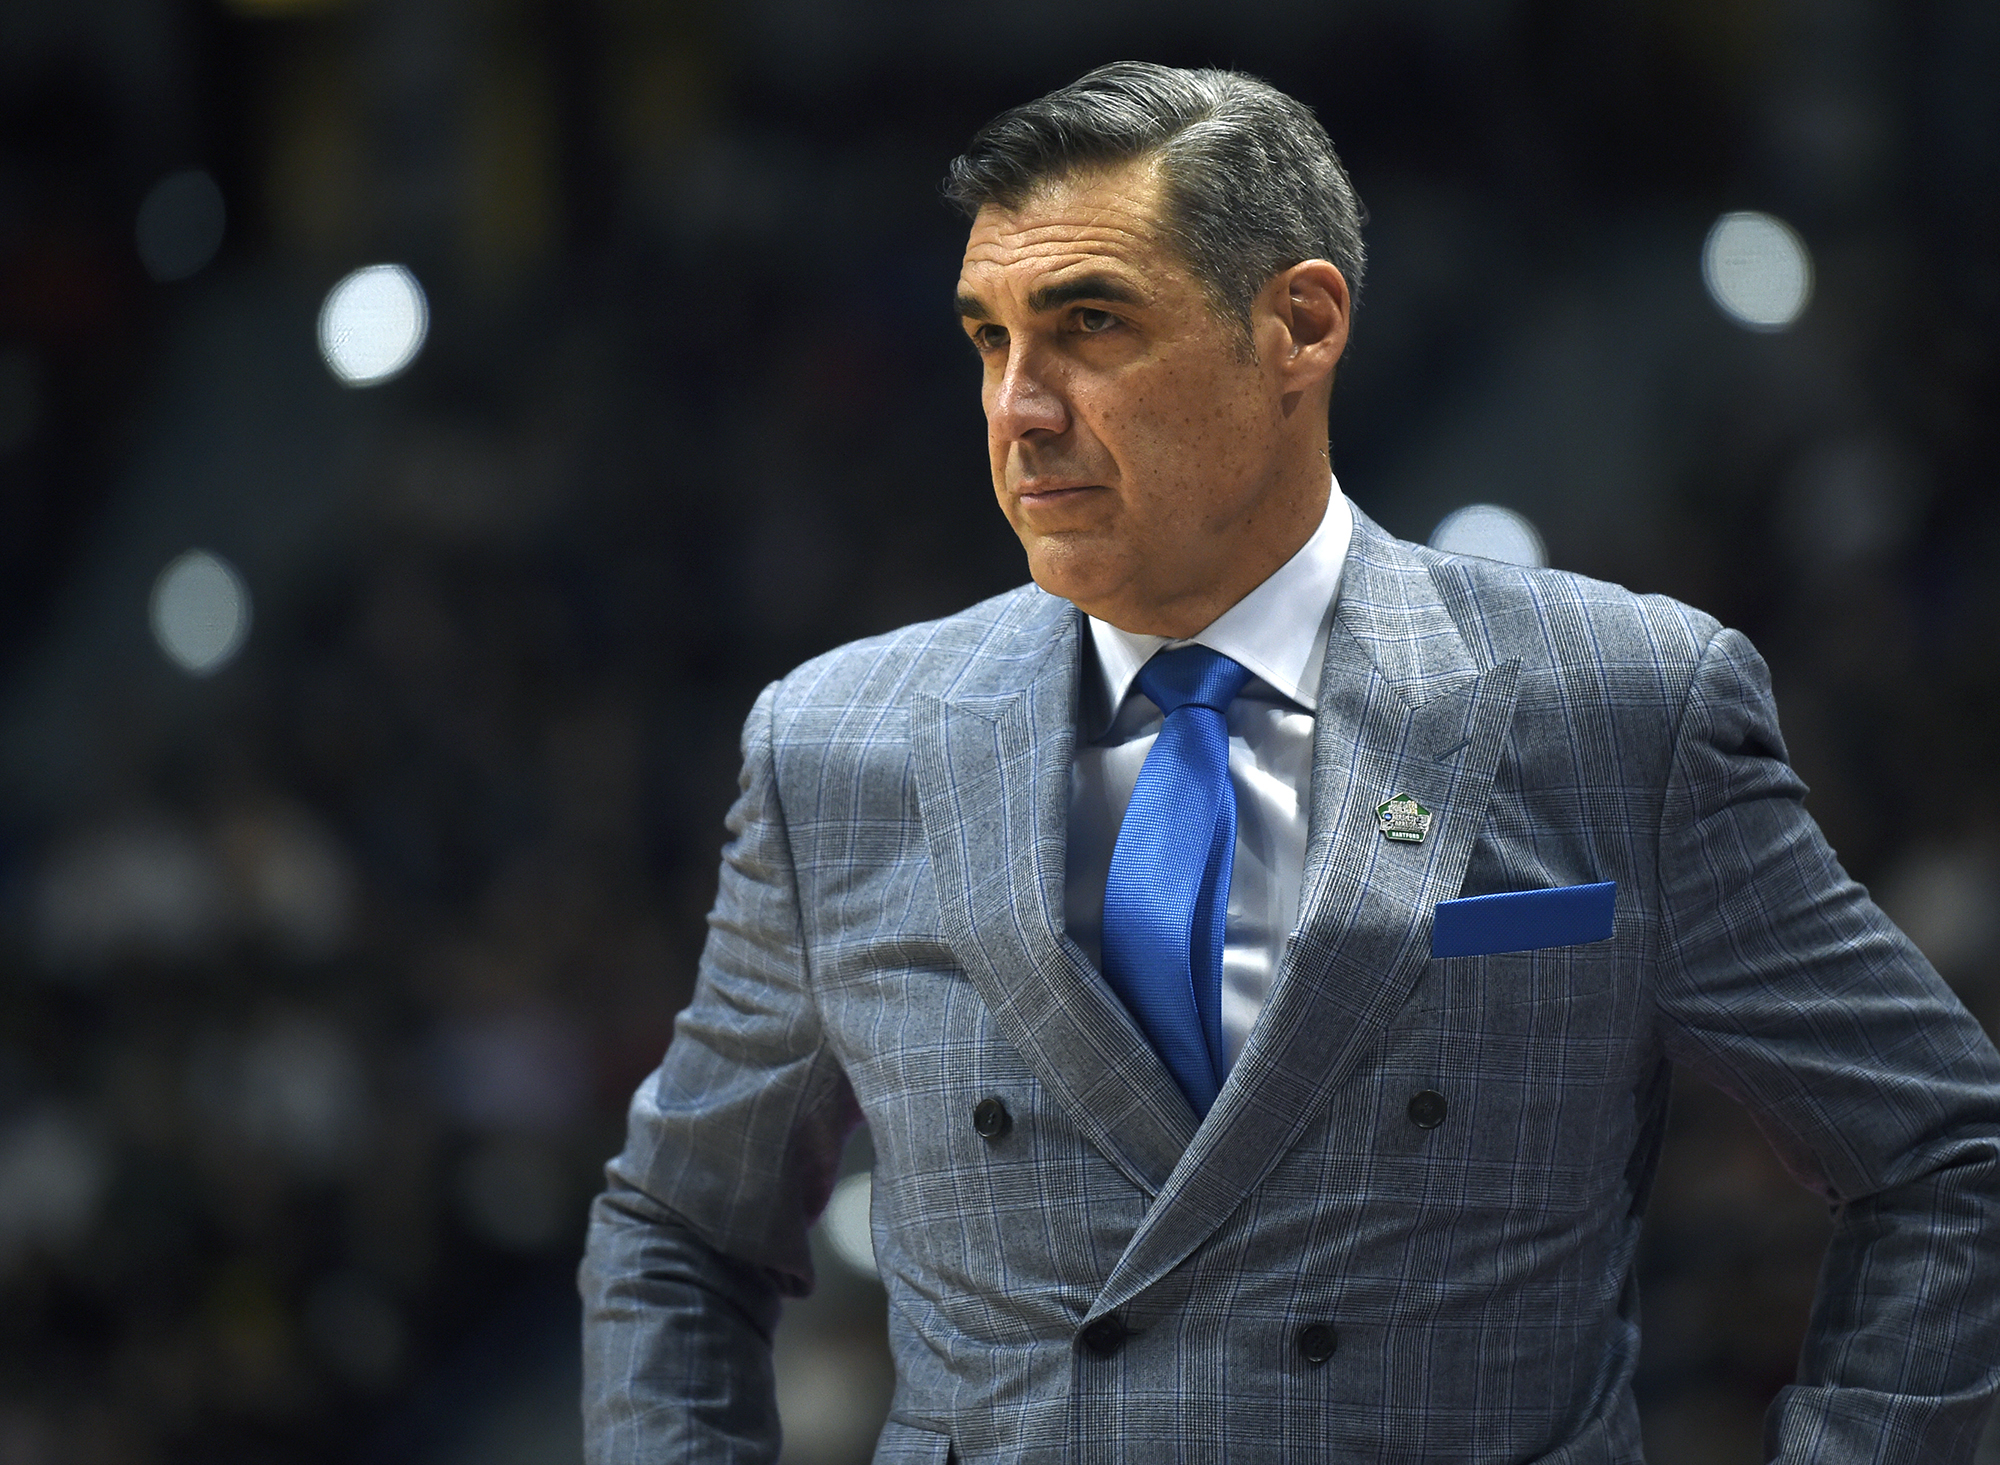 March 21, 2019 - Hartford, CT, USA - Villanova head coach Jay Wright looks on during action against St. Mary's in the first round of the NCAA Tournament at XL Center in Hartford, Conn., on Thursday, March 21, 2019. Villanova advanced, 61-57. (Credit Image: © Brad Horrigan/Hartford Courant/TNS via ZUMA Wire)